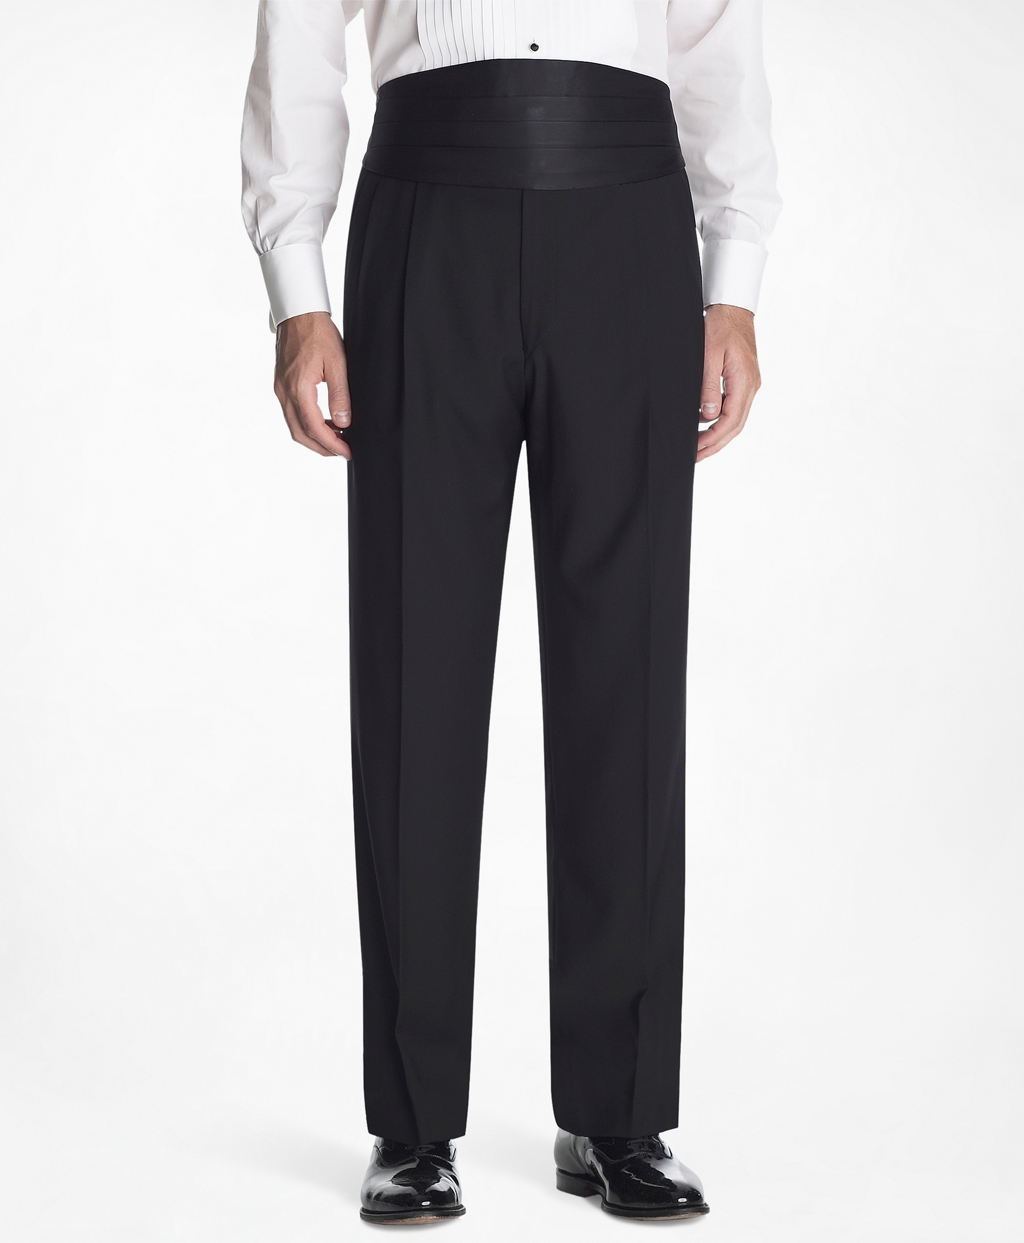 1950s Men's Clothing Brooks Brothers Mens 1818 Pleat-Front Tuxedo Trousers $300.00 AT vintagedancer.com